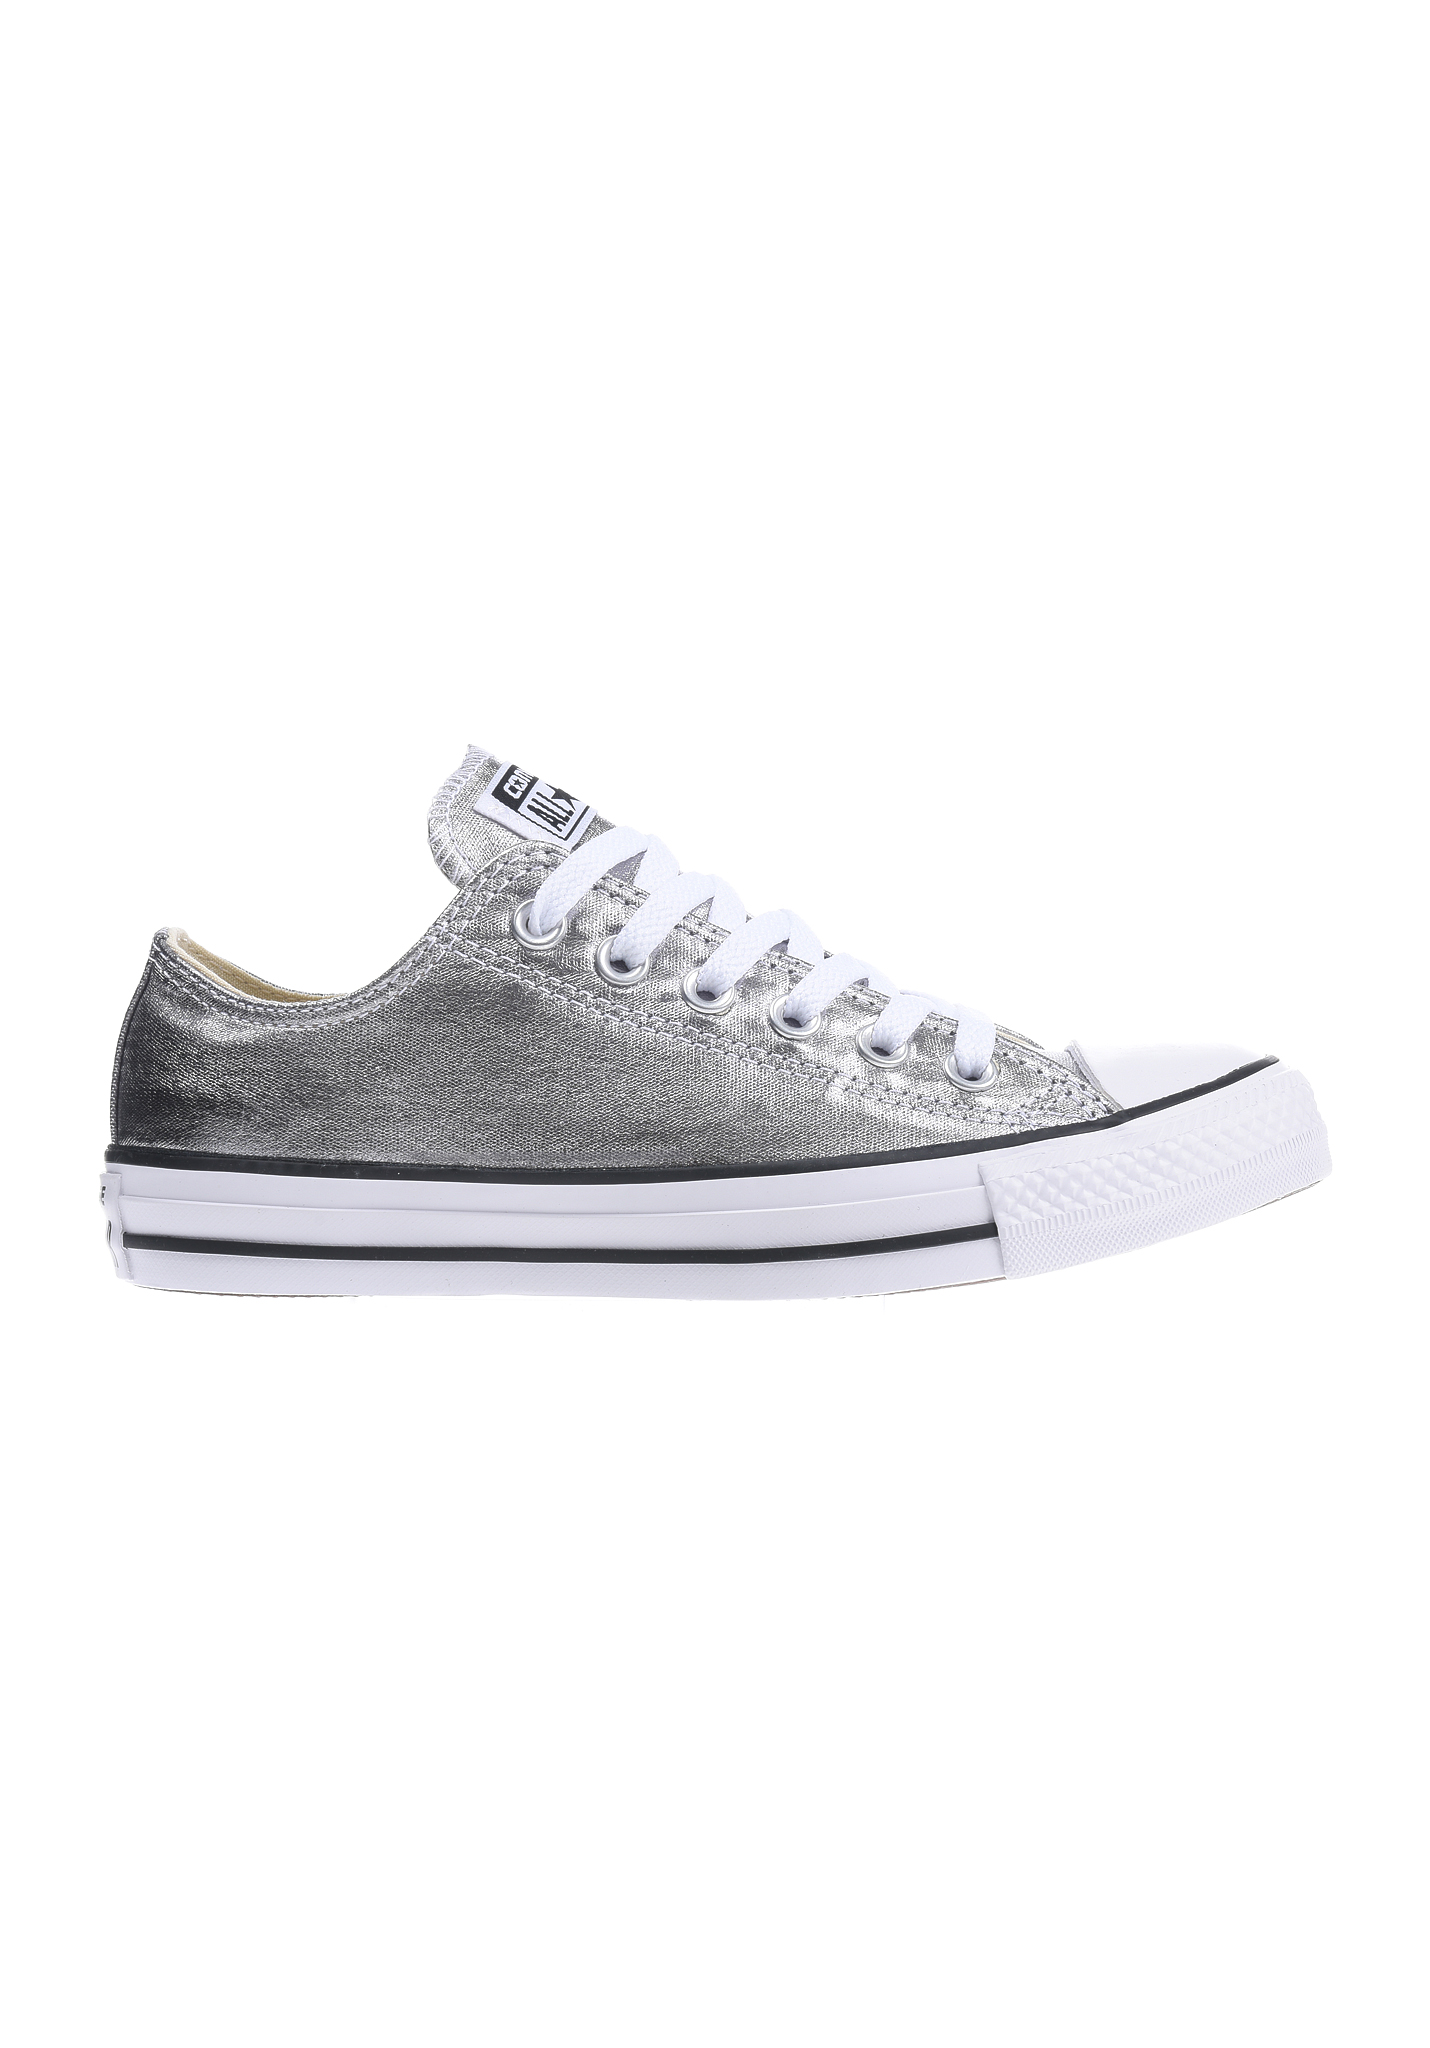 converse chuck taylor all star ox damen sneaker turnschuhe. Black Bedroom Furniture Sets. Home Design Ideas